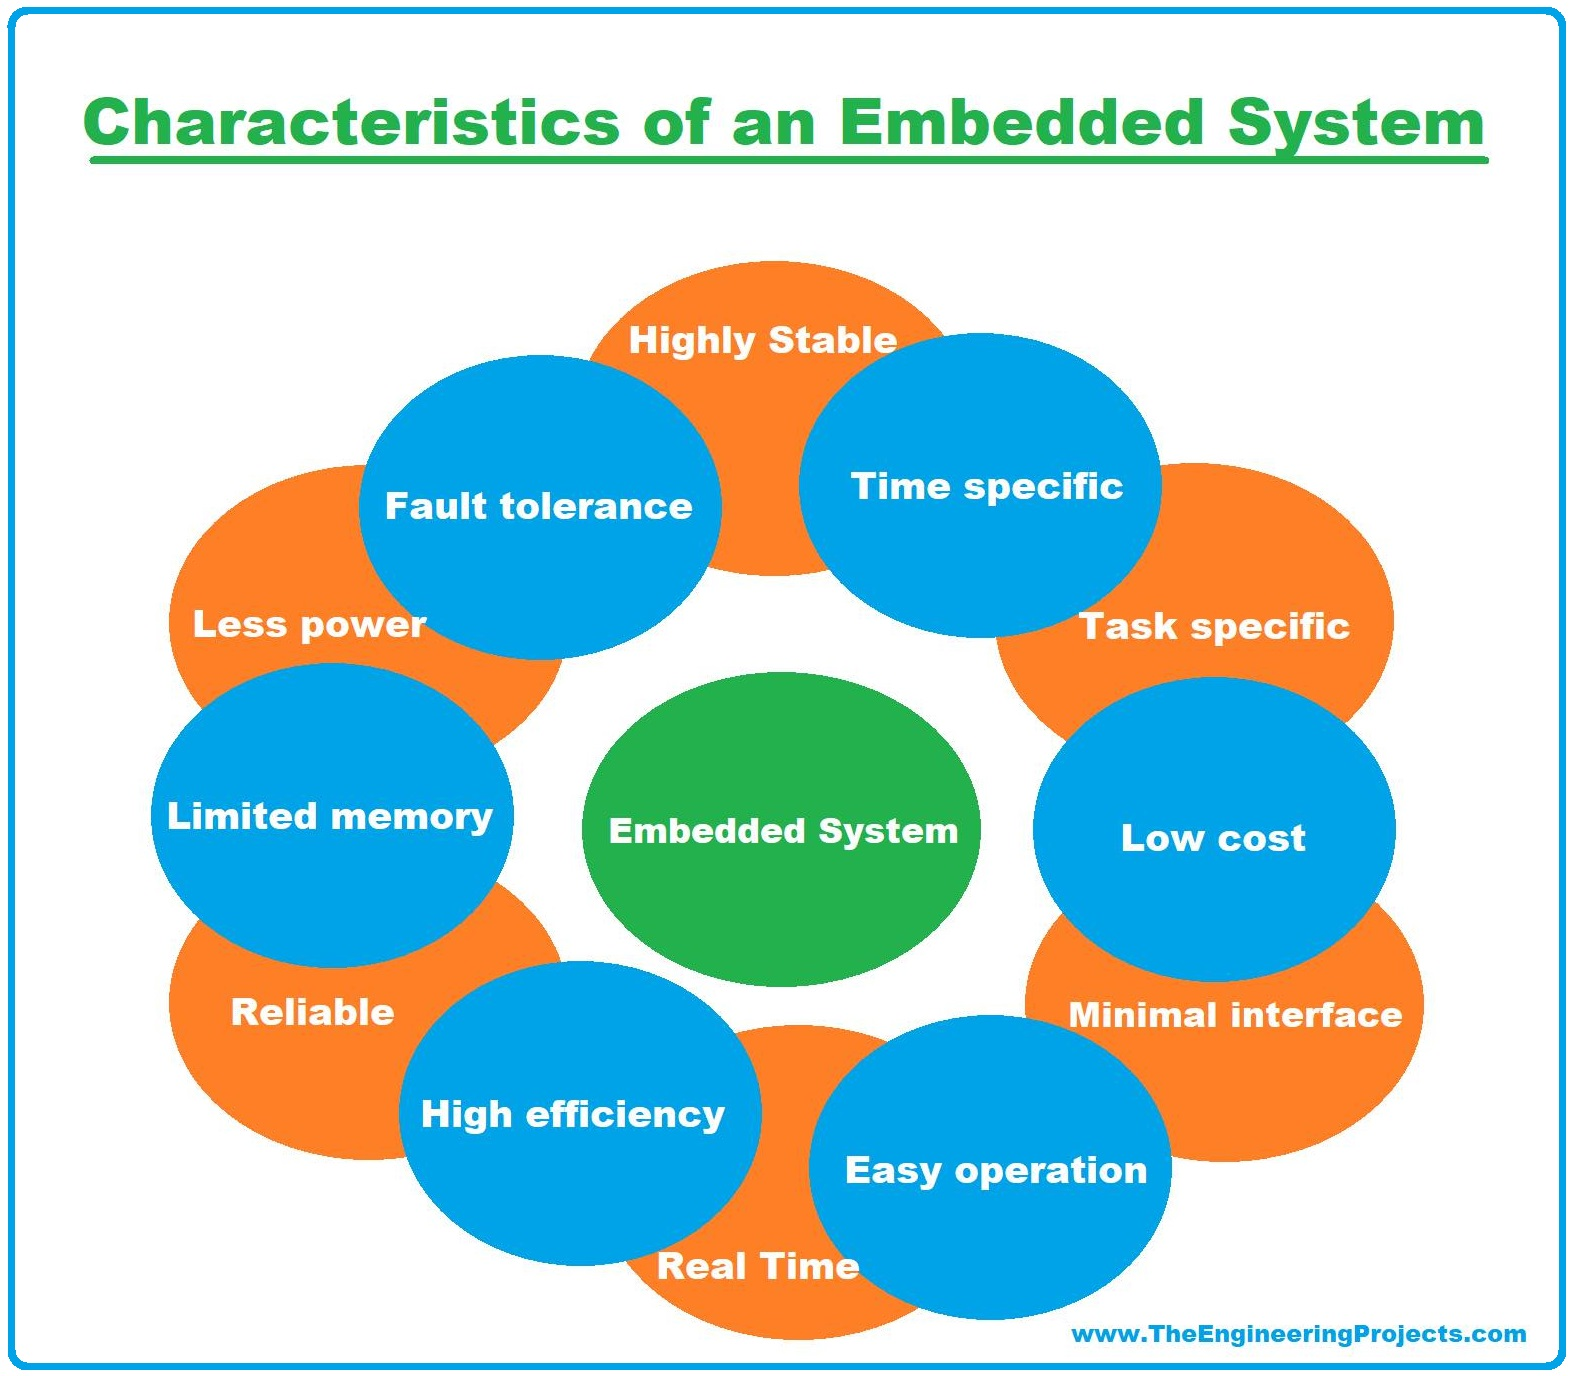 Embedded Systems, what is Embedded Systems, definition of Embedded Systems, Characteristics of Embedded Systems, embedded systems characteristics, embedded system characteristics, Components of Embedded System